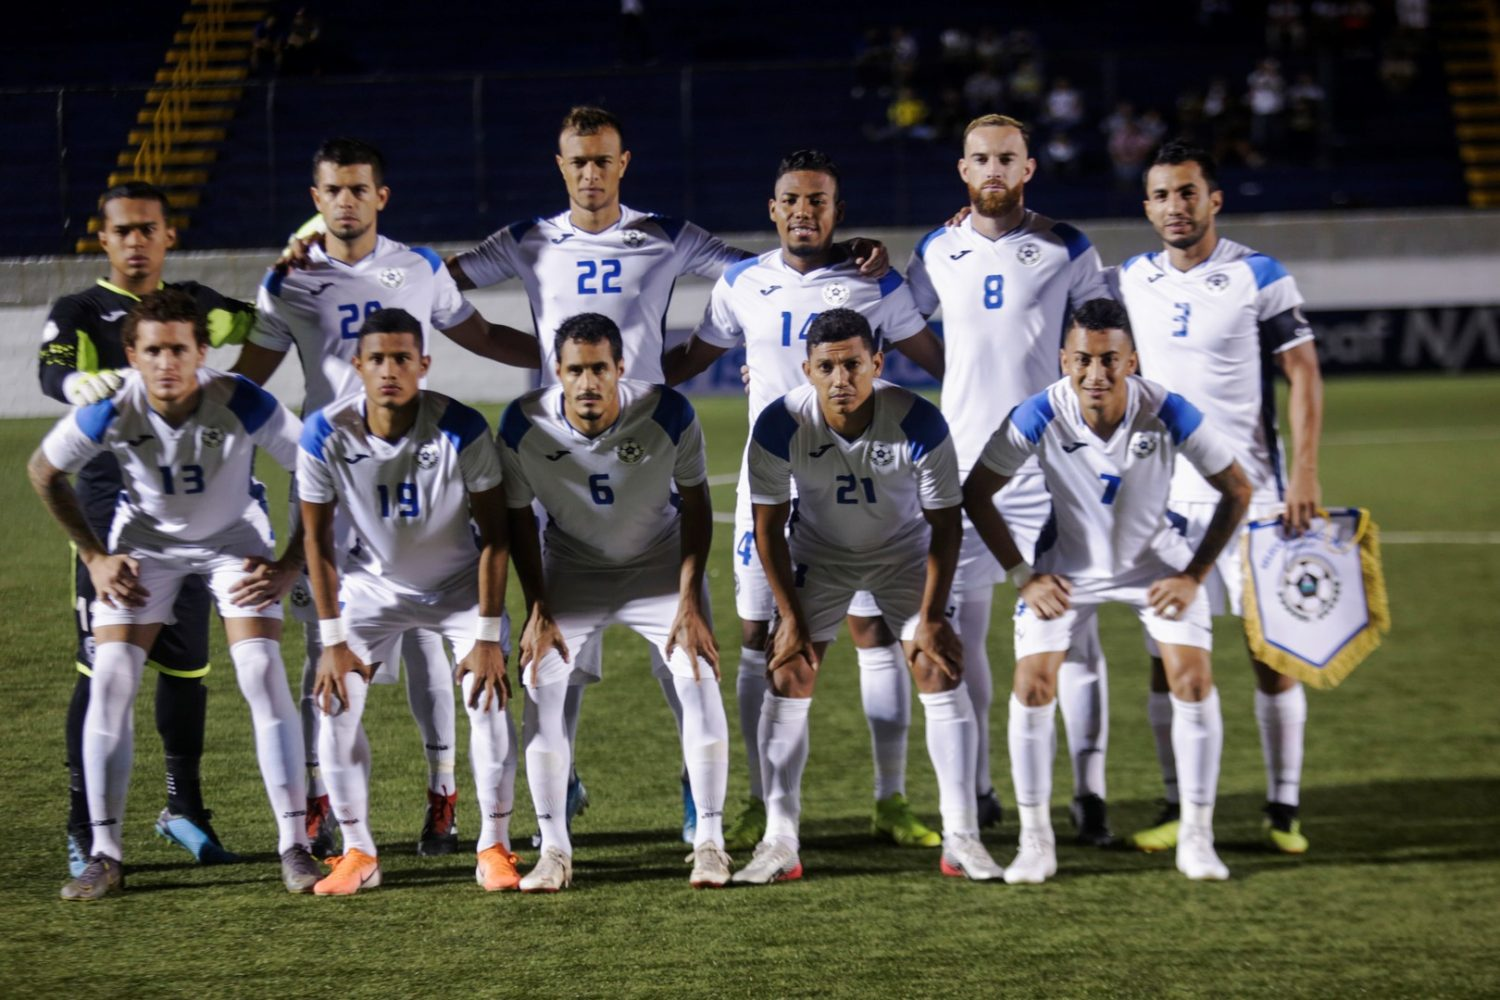 Belize's next two rivals, Turks & Caicos, Nicaragua, play today